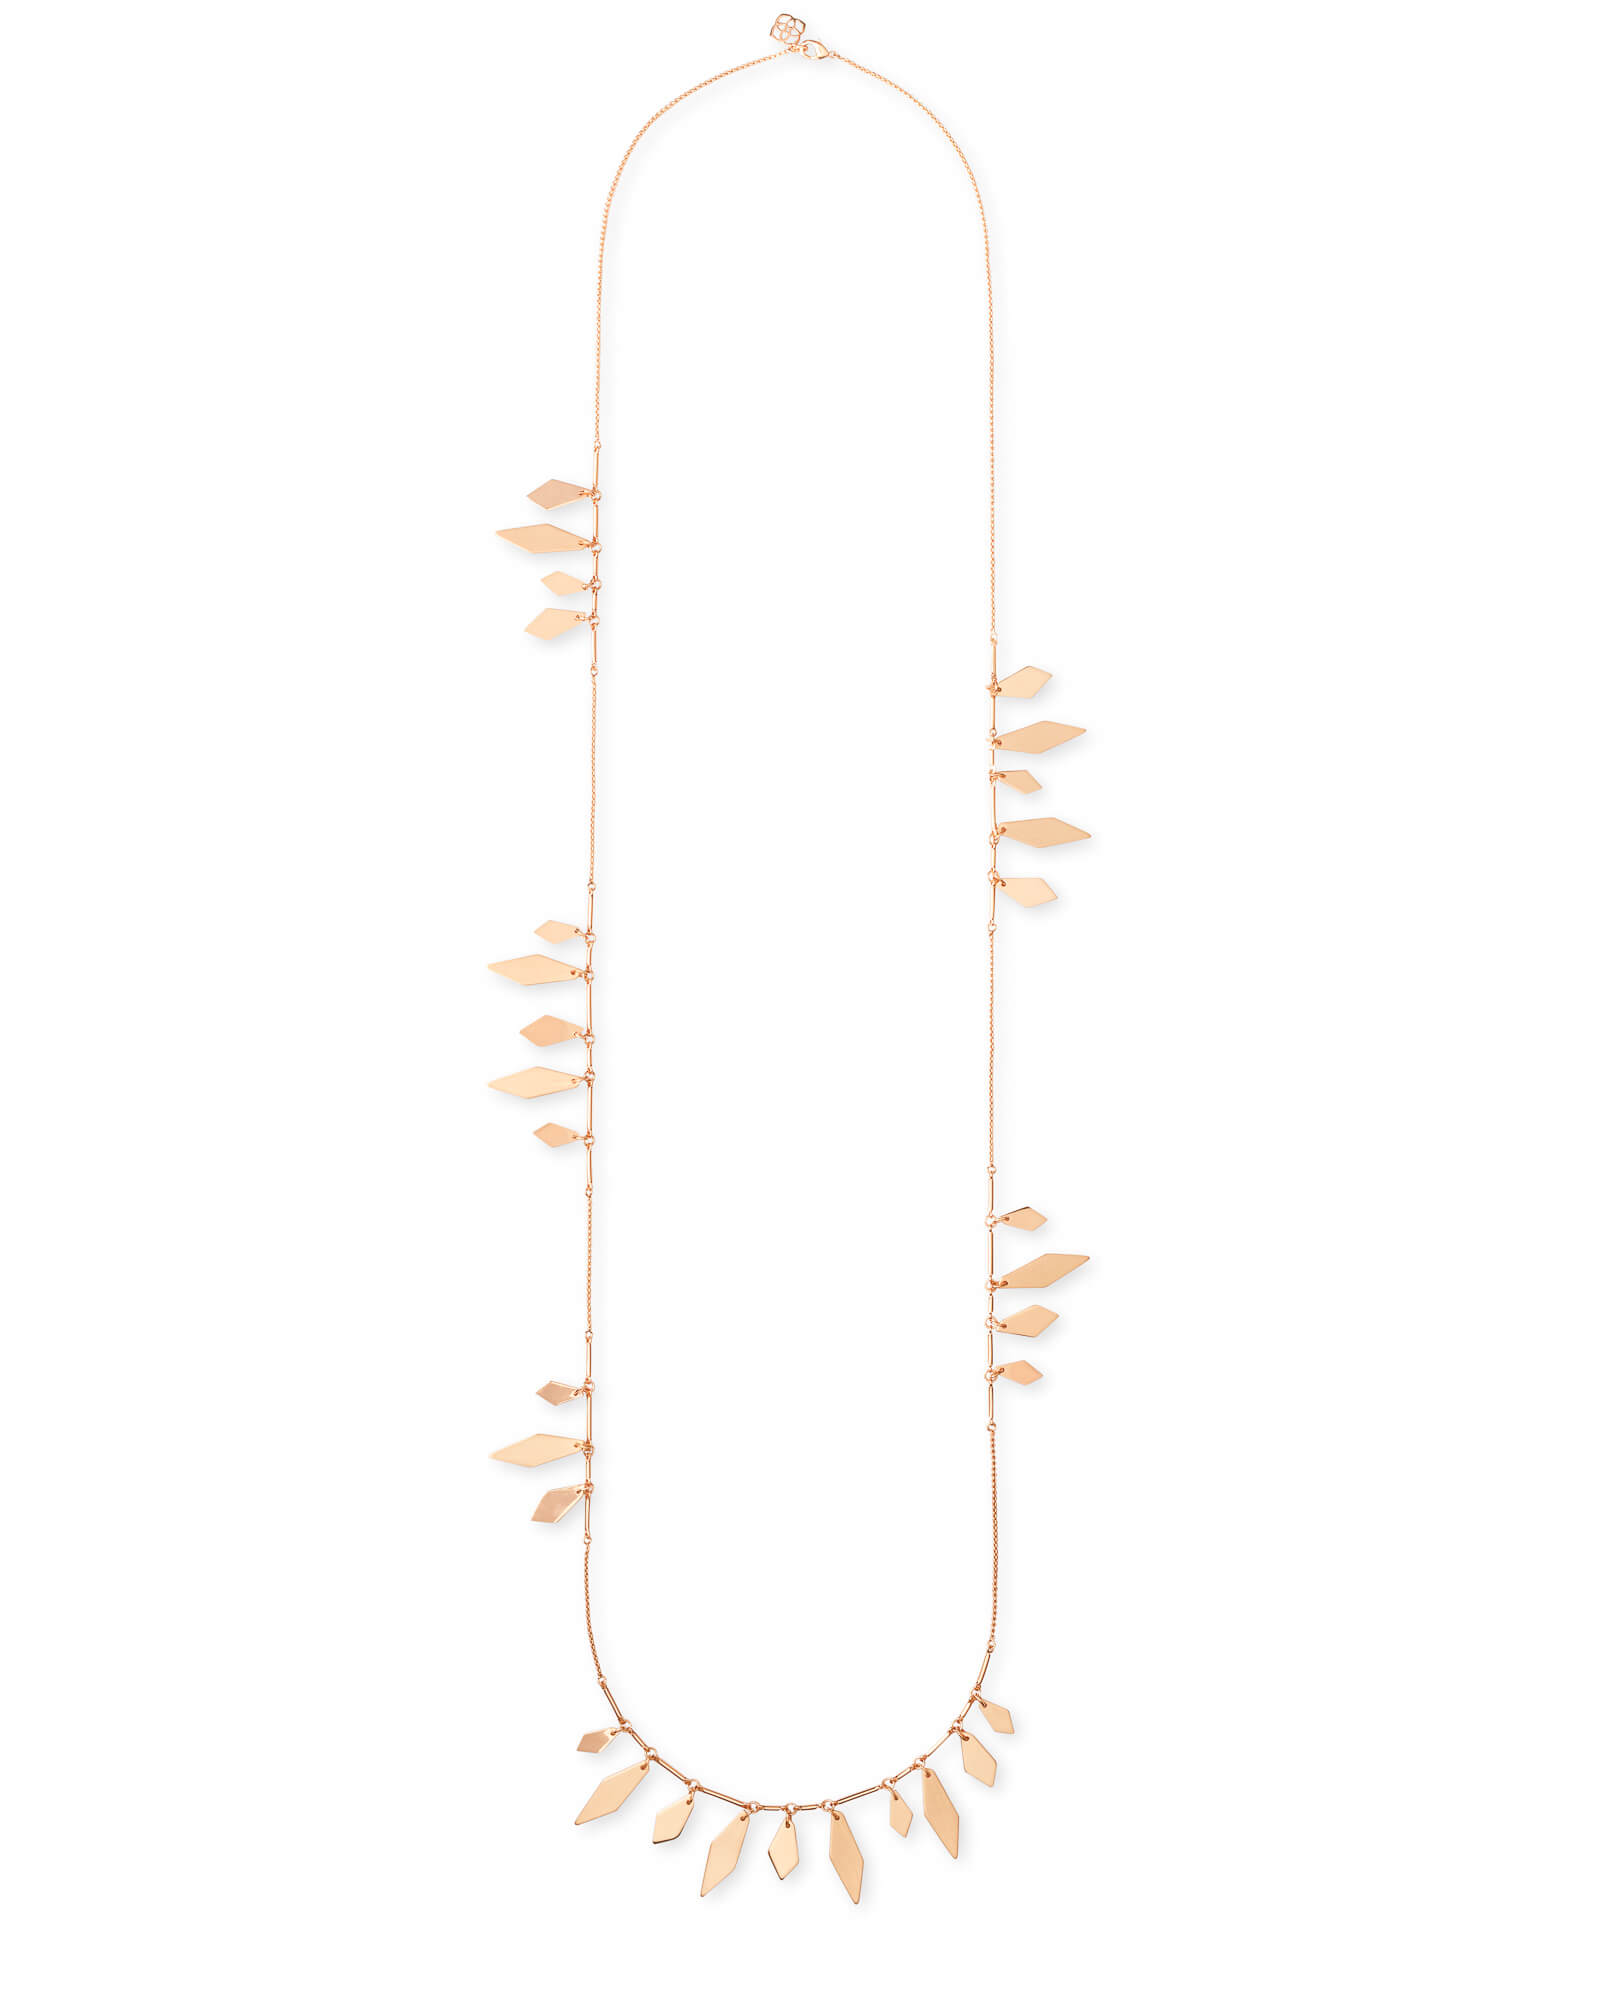 Blaine Long Necklace in Rose Gold